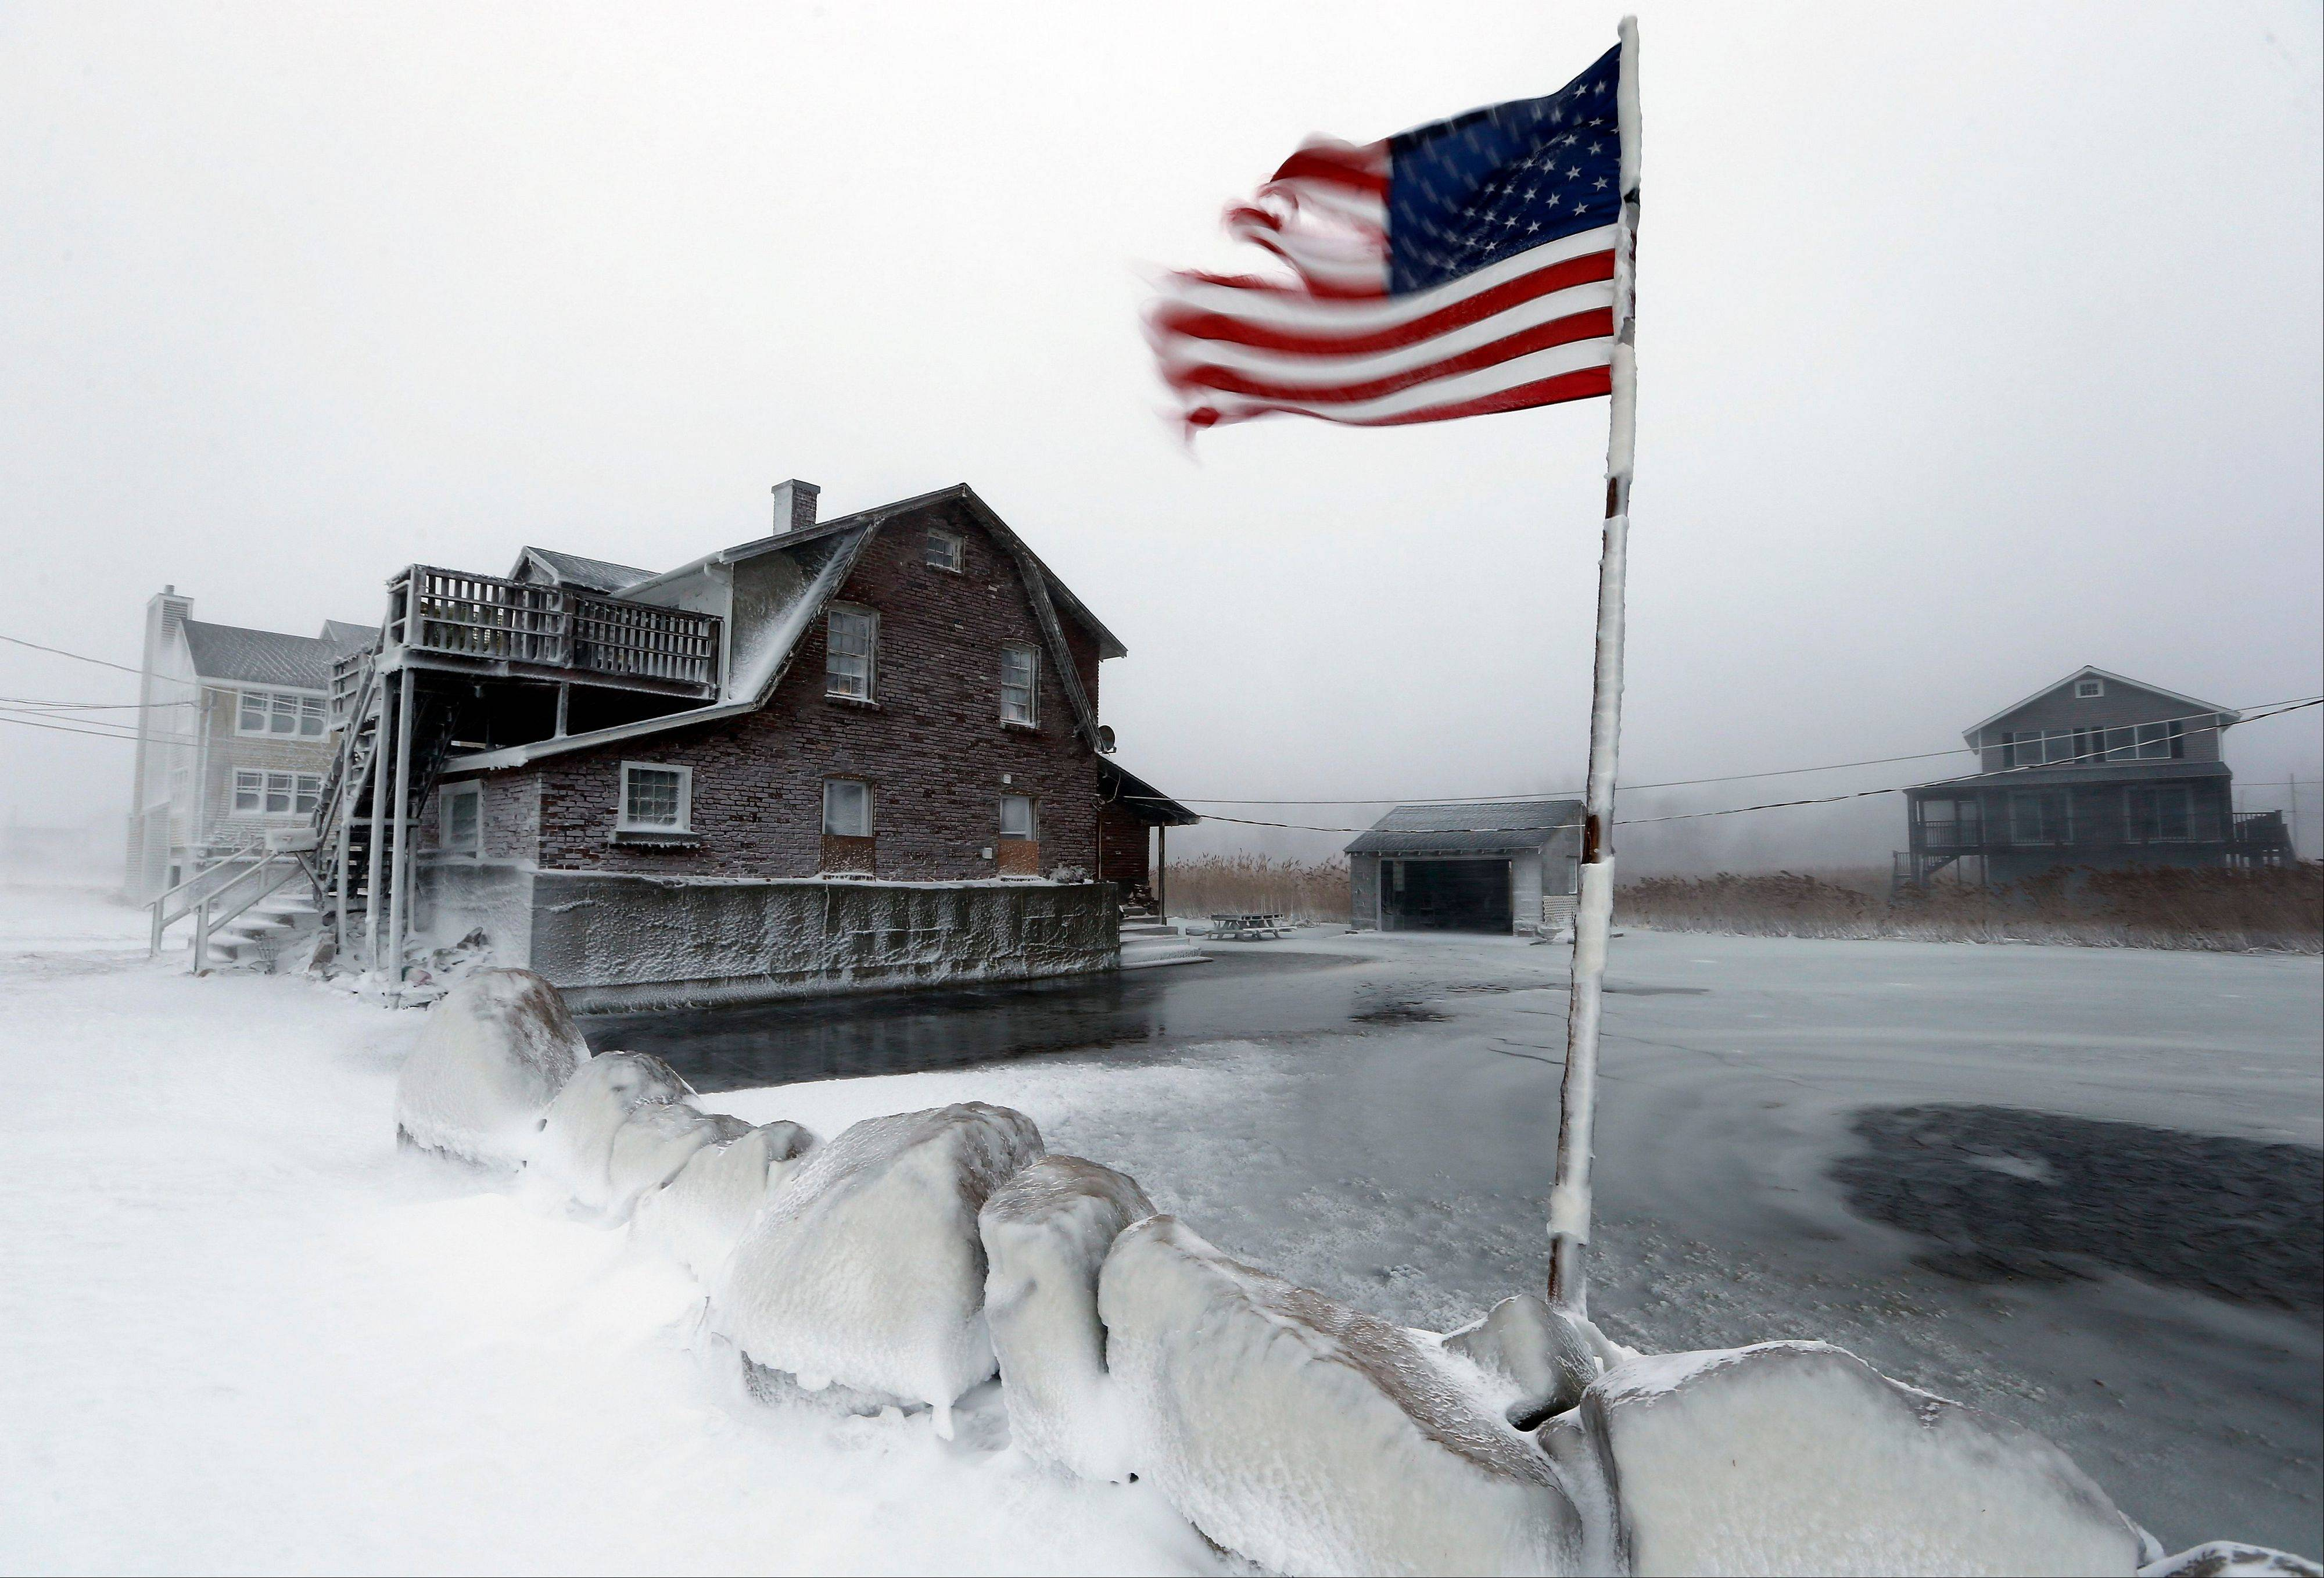 A tattered flag flies by a flooded yard along the shore in Scituate, Mass., Friday, Jan. 3, 2014. A blustering winter storm that dropped nearly 2 feet of snow just north of Boston, shut down major highways in New York and Pennsylvania and forced U.S. airlines to cancel thousands of flights nationwide menaced the Northeast on Friday with howling winds and frigid temperatures.